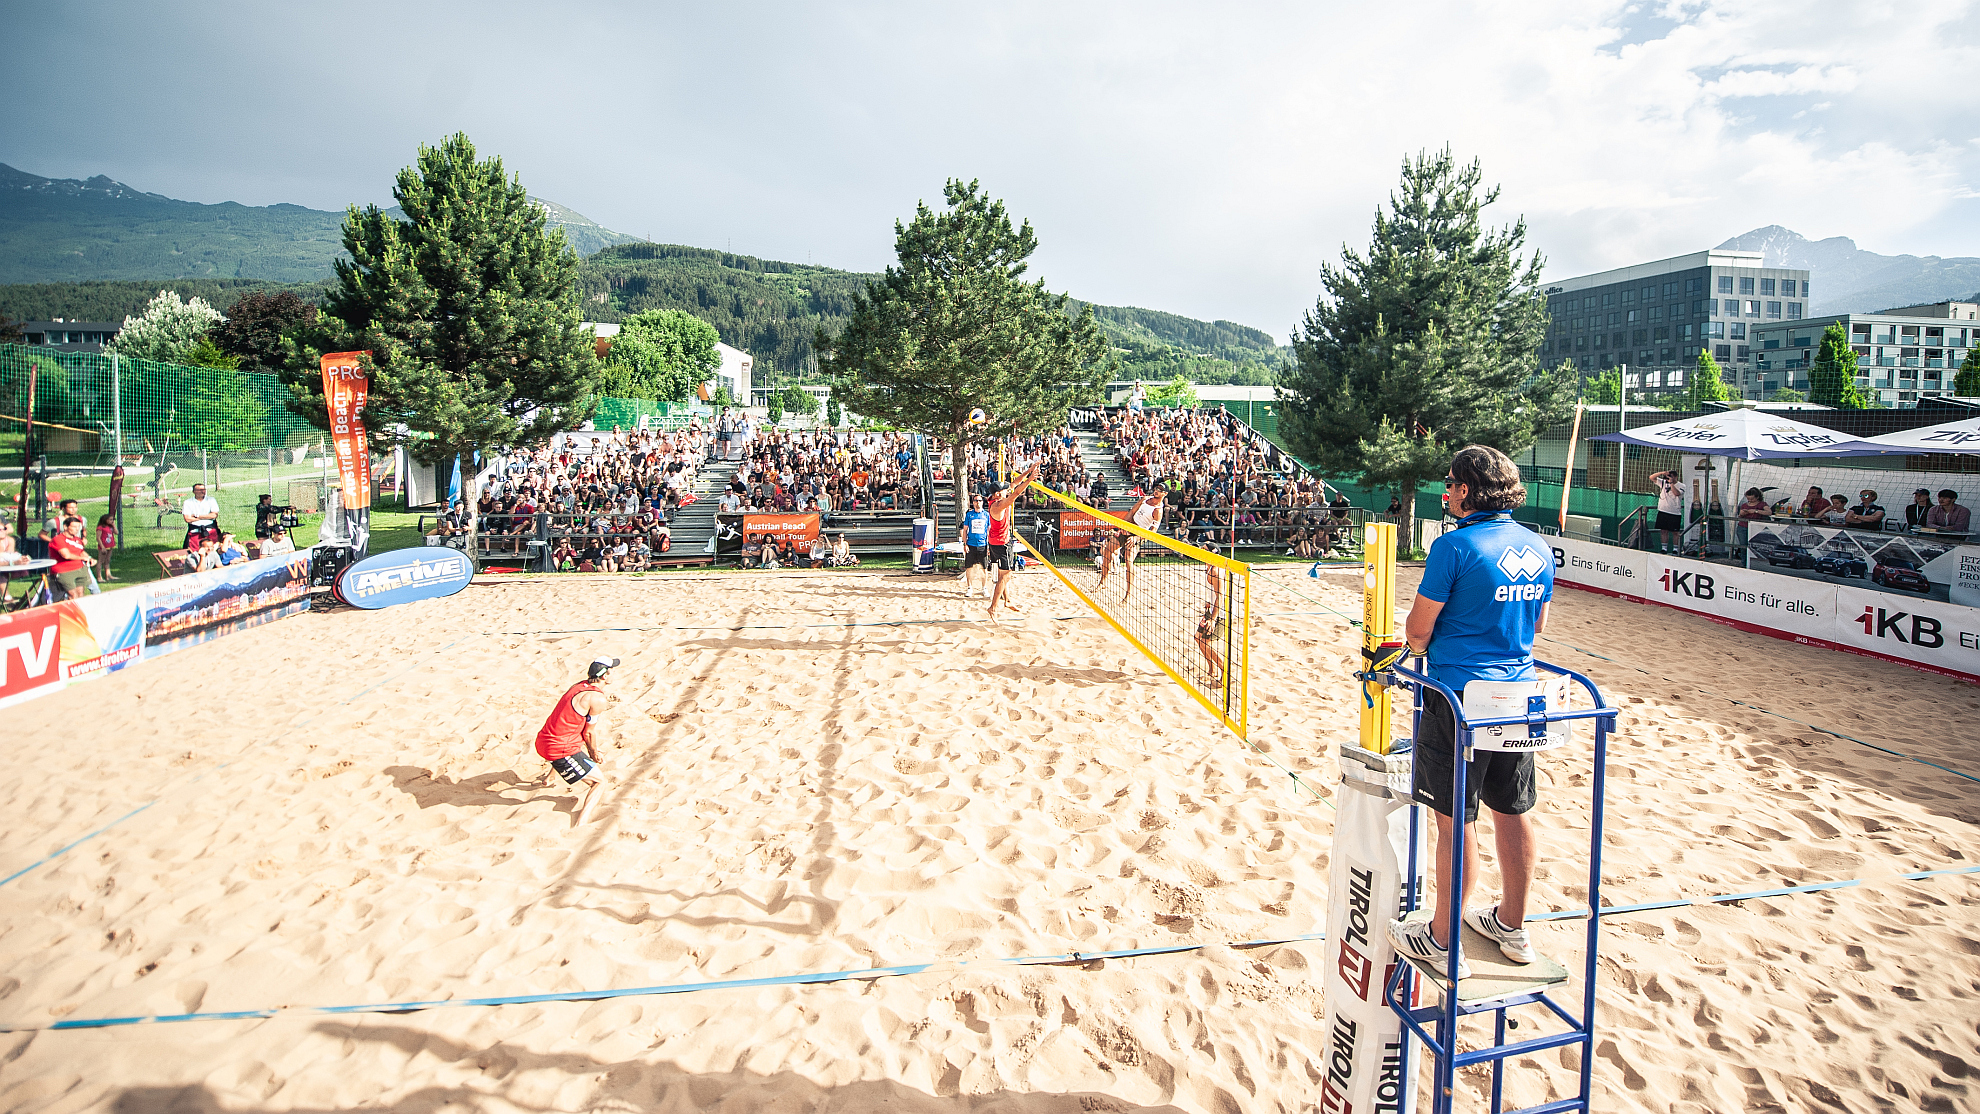 FOTO 2019 © Innsbruck BeachEvent